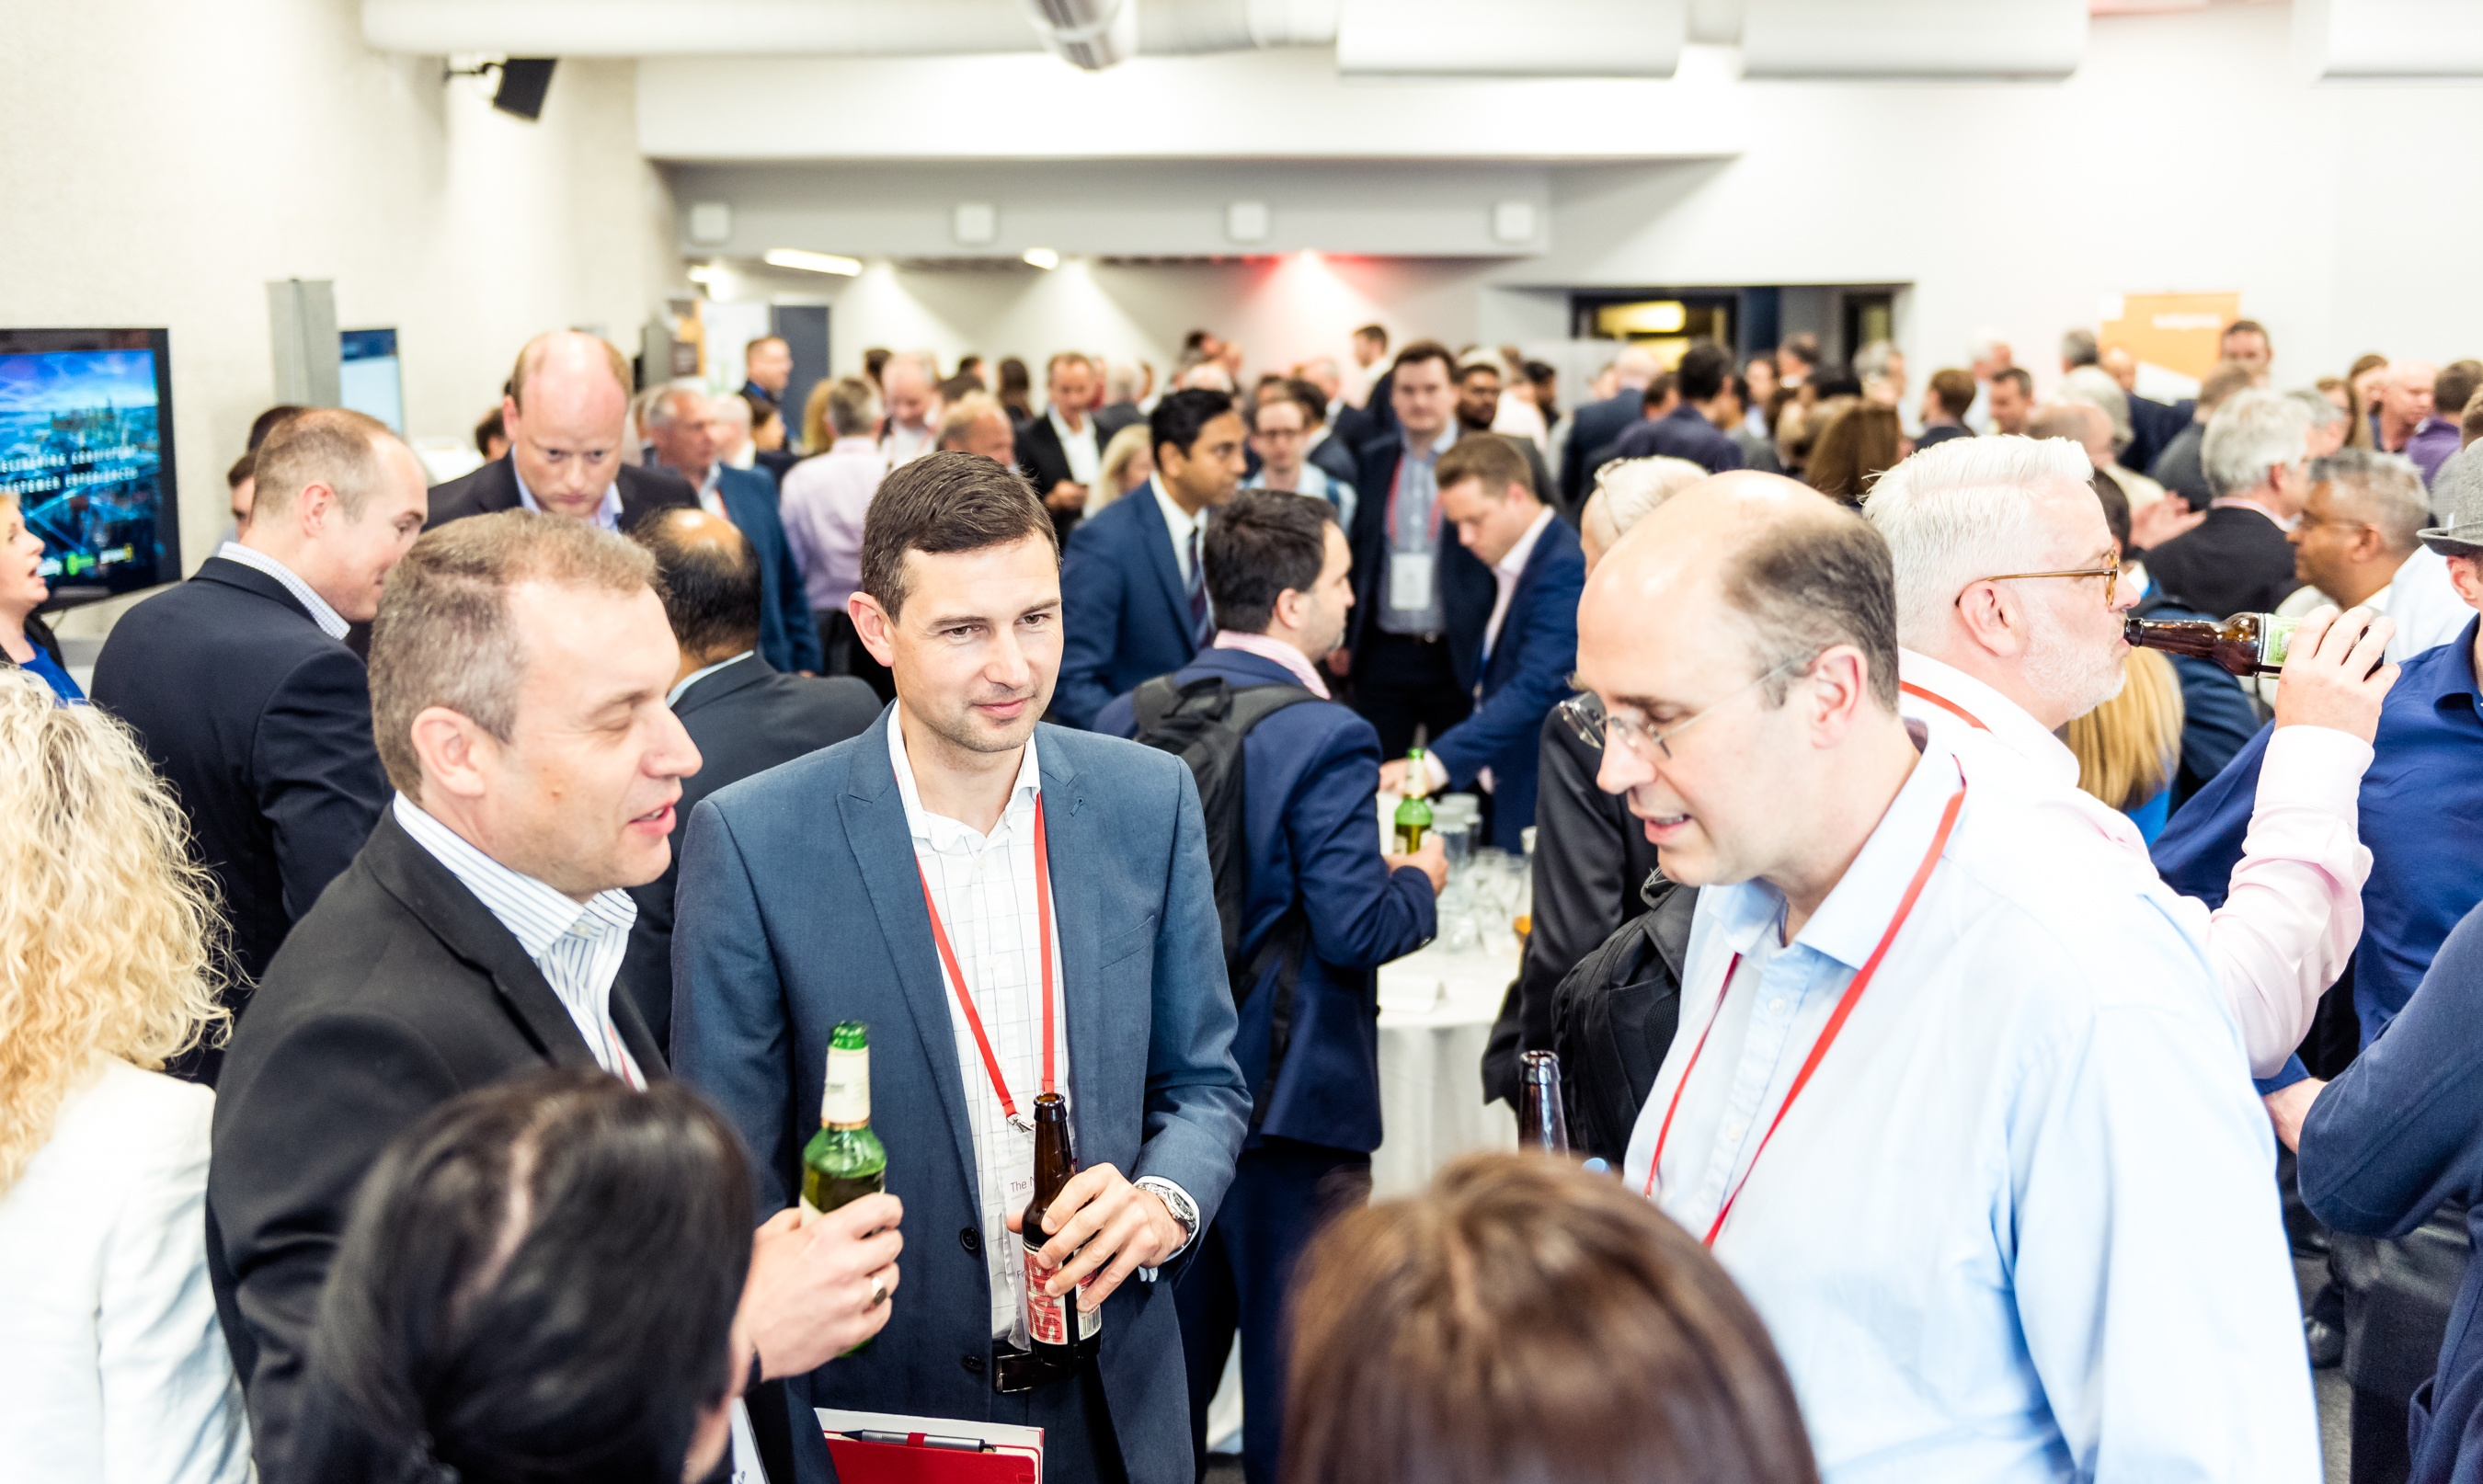 Itelligence-Annual-Conference-2018-QE-II-London-Simon-Callaghan-Photography-1327